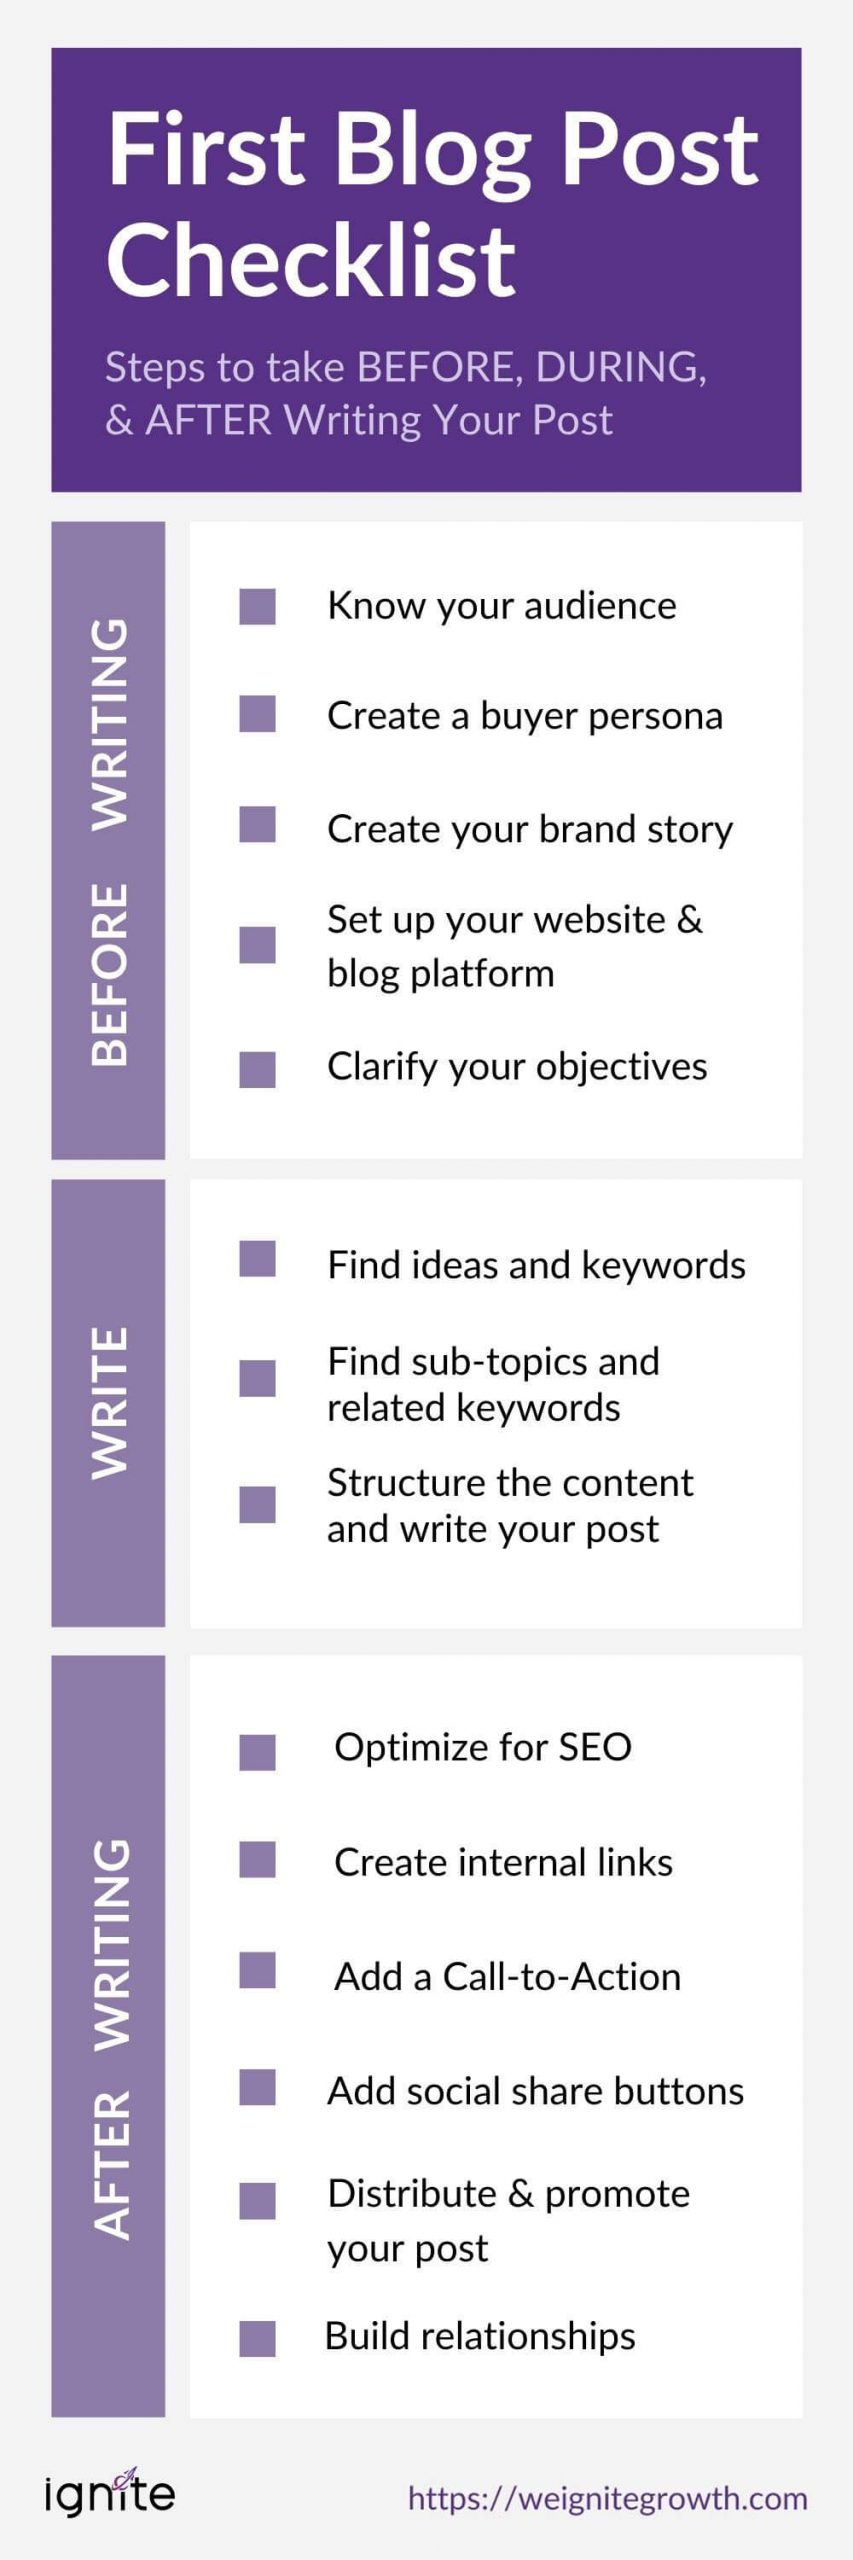 Blog Post Checklist_How to Write Your First Blog Post